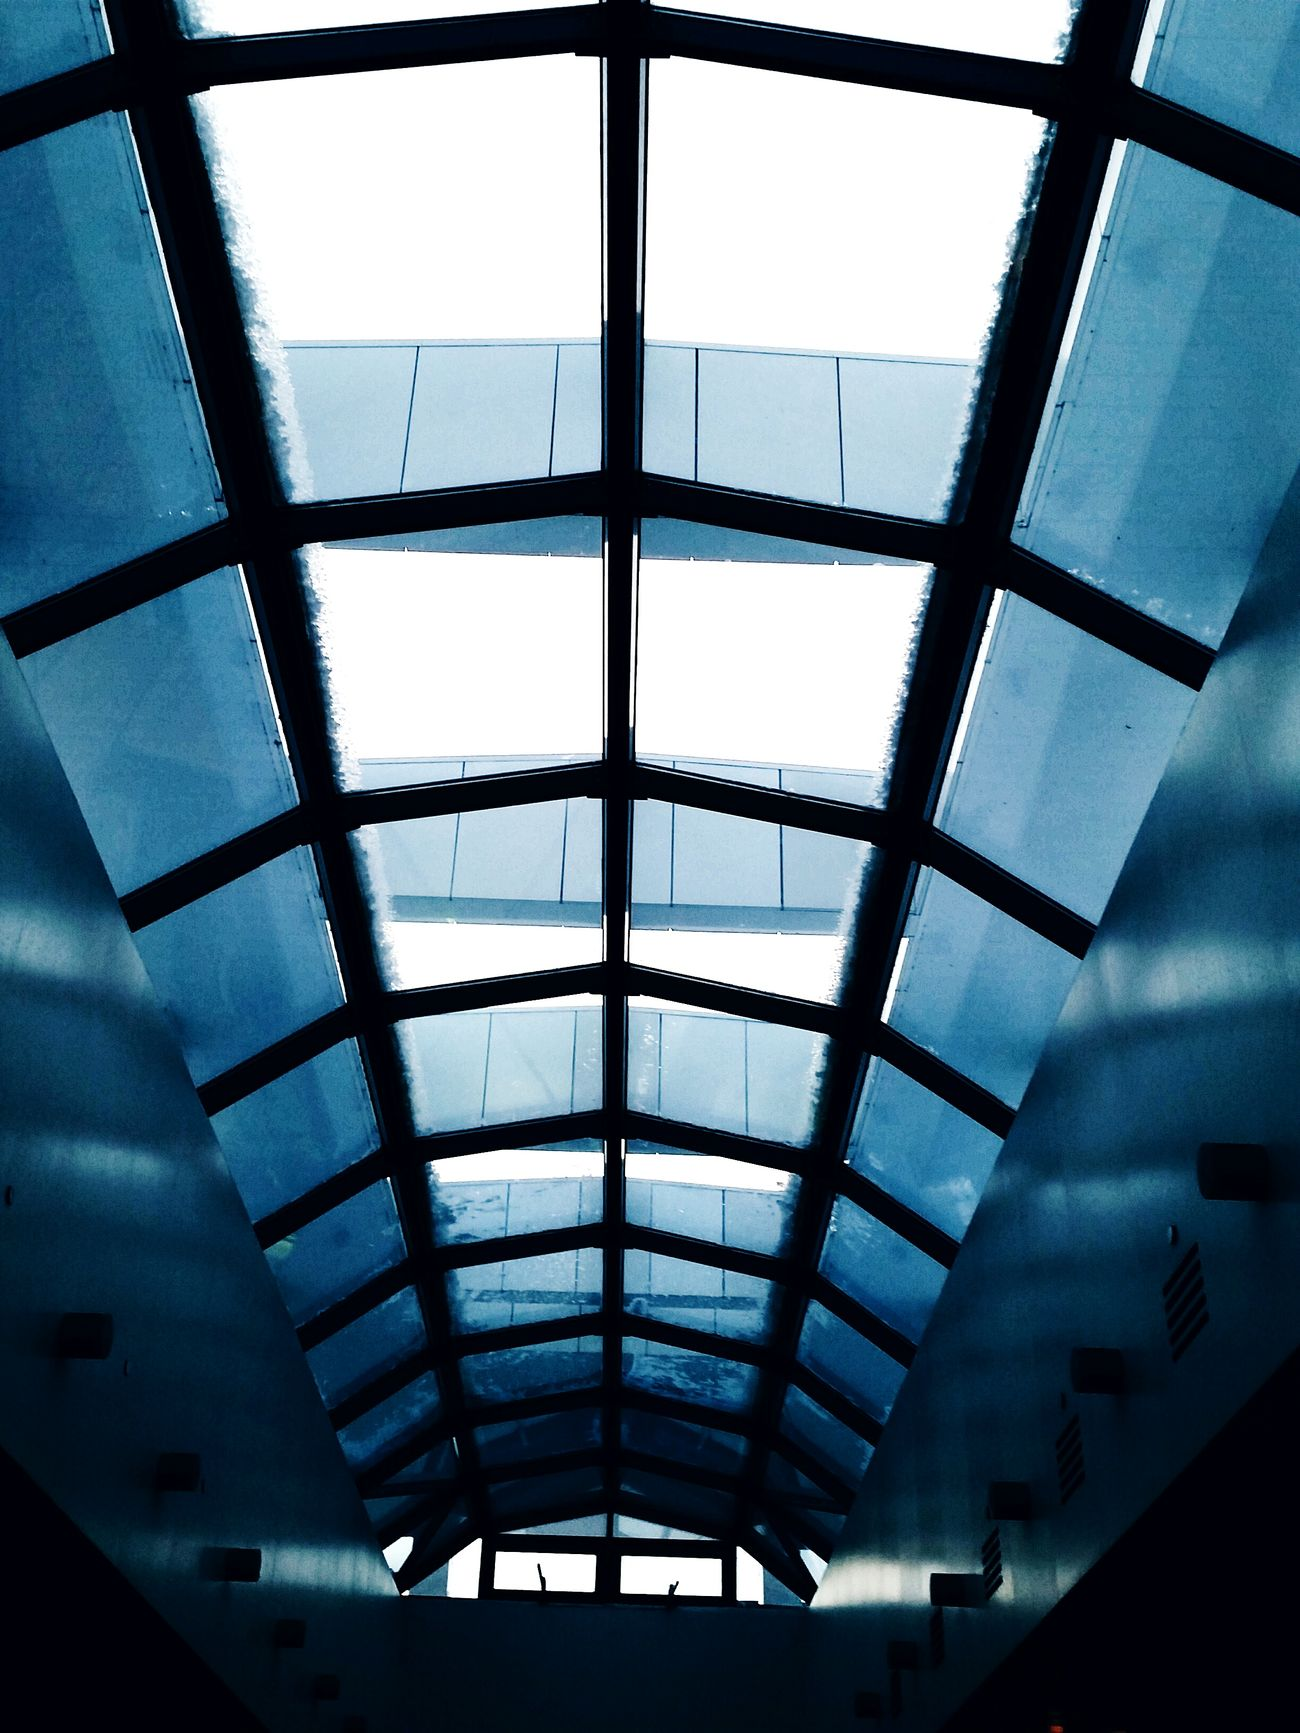 Urban Geometry Architecture Sky Shopping Eye4photography  EyeEm Winter Taking Photos Enjoying Life Relaxing